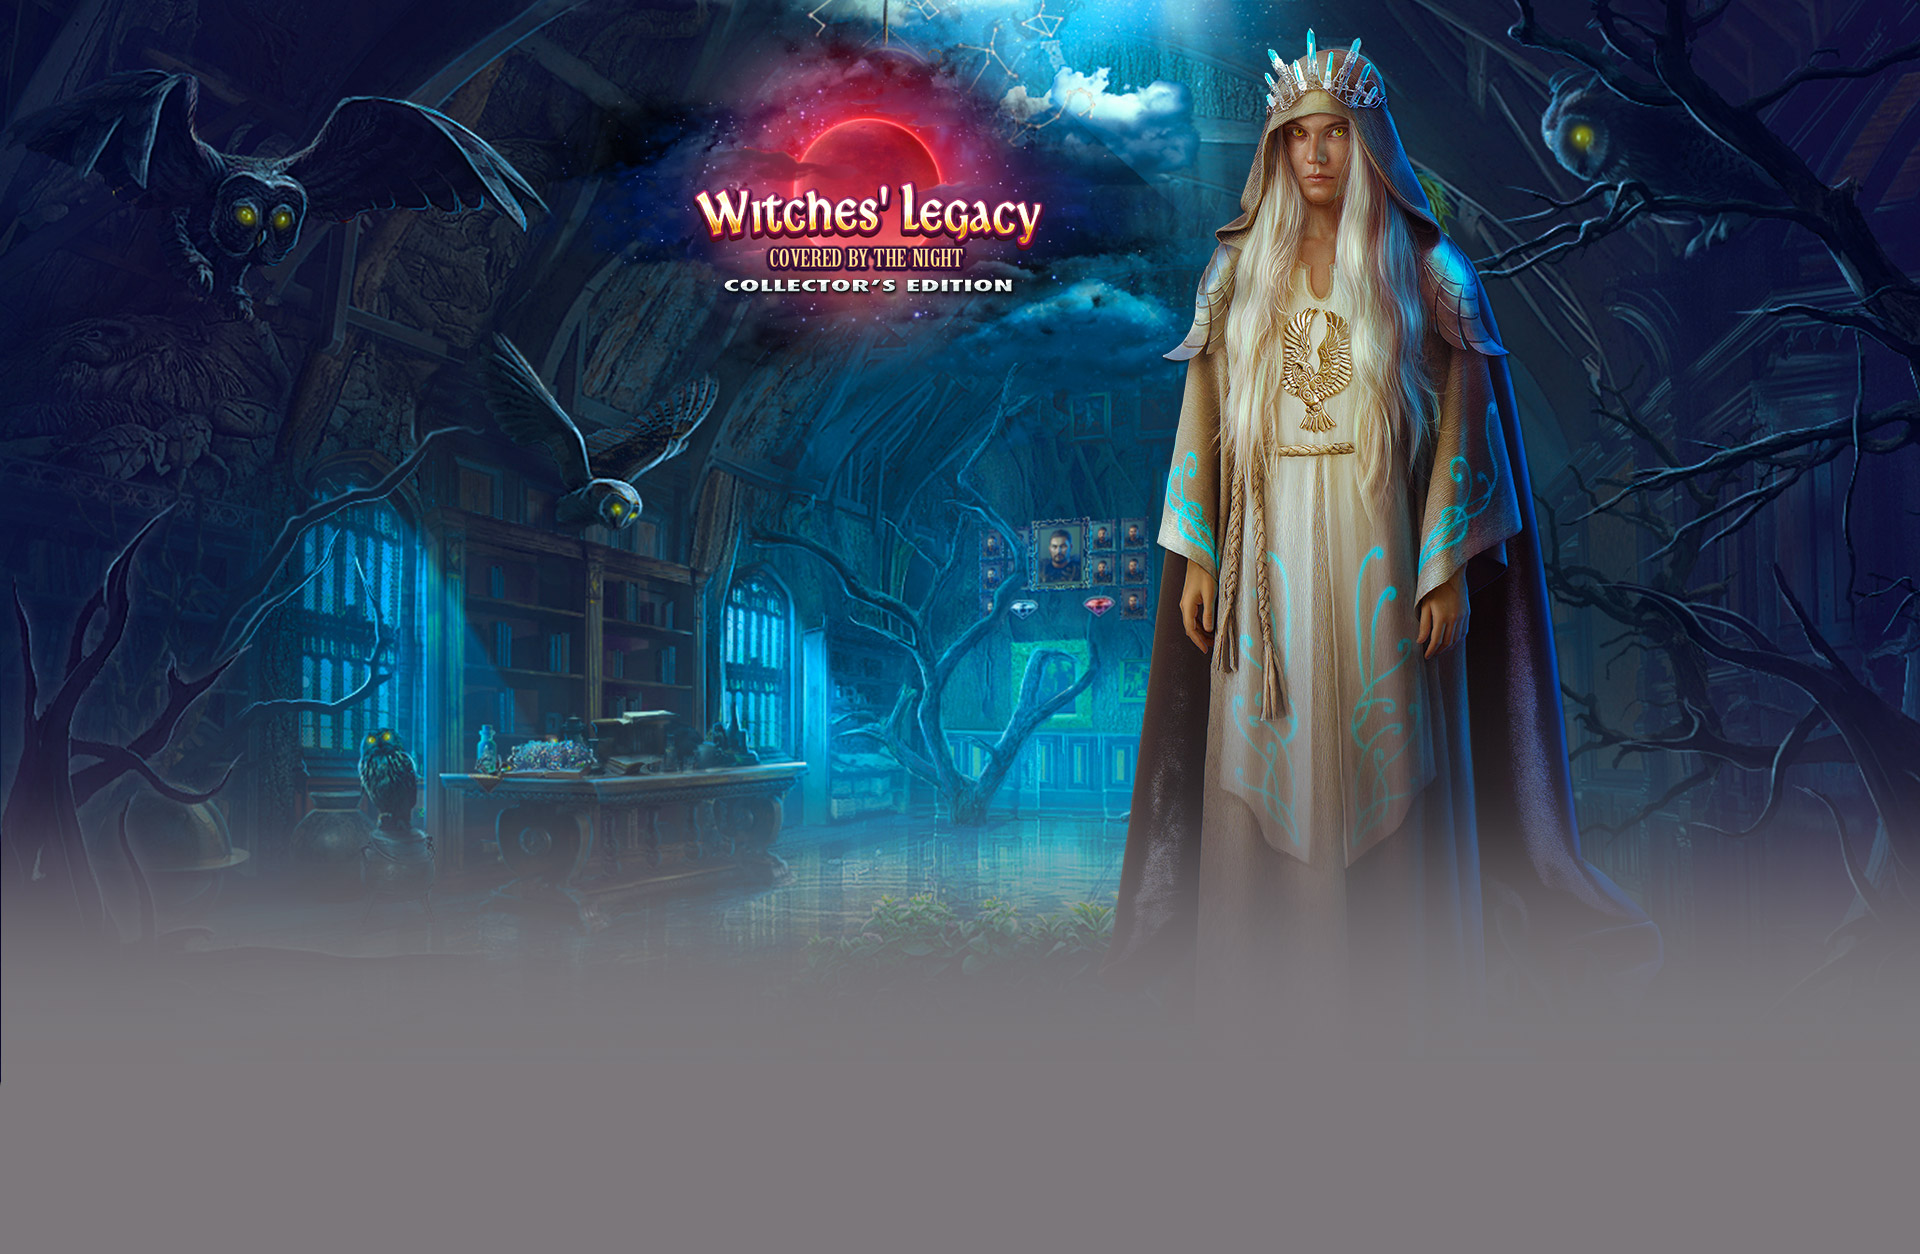 Witches' Legacy: Covered by the Night Collector's Edition